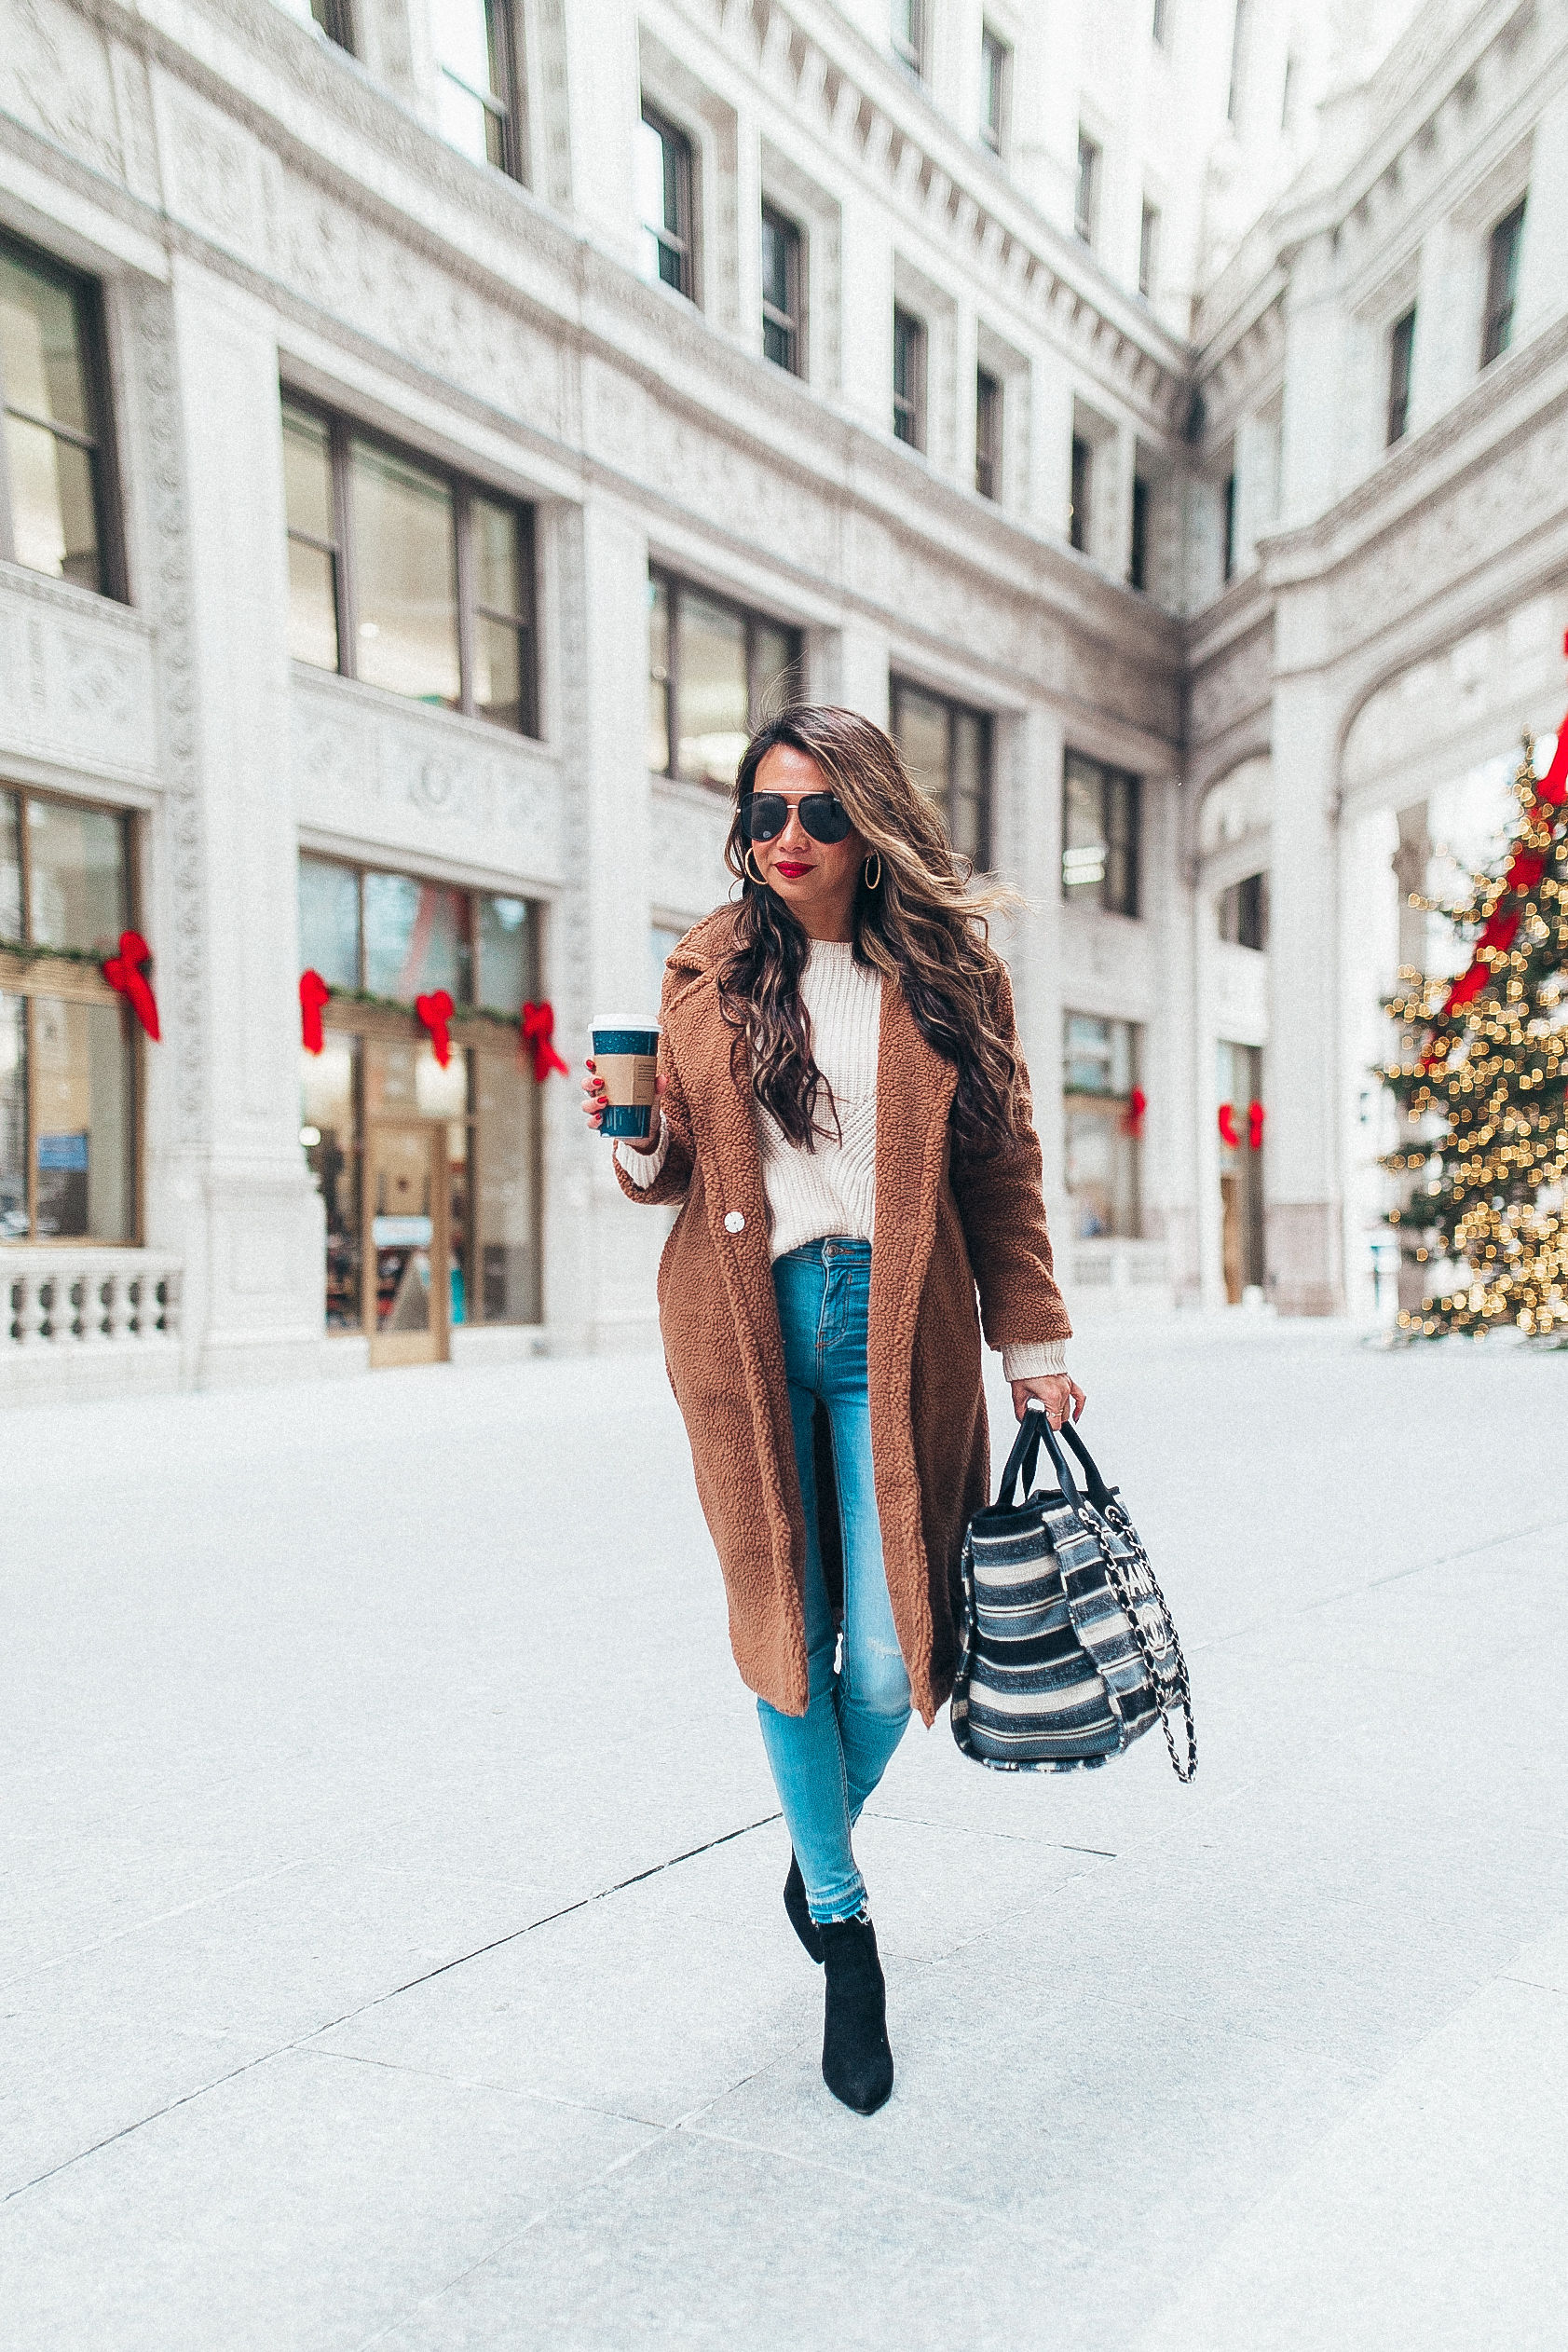 chicago holiday style, chicago blogger, Jennifer Worman, chicago christmas, 25 things about me, Best teddy coat, the only coat you need for winter, women's teddy coat, JOA teddy coat, coziest coat, jennifer worman, chicago winter style,